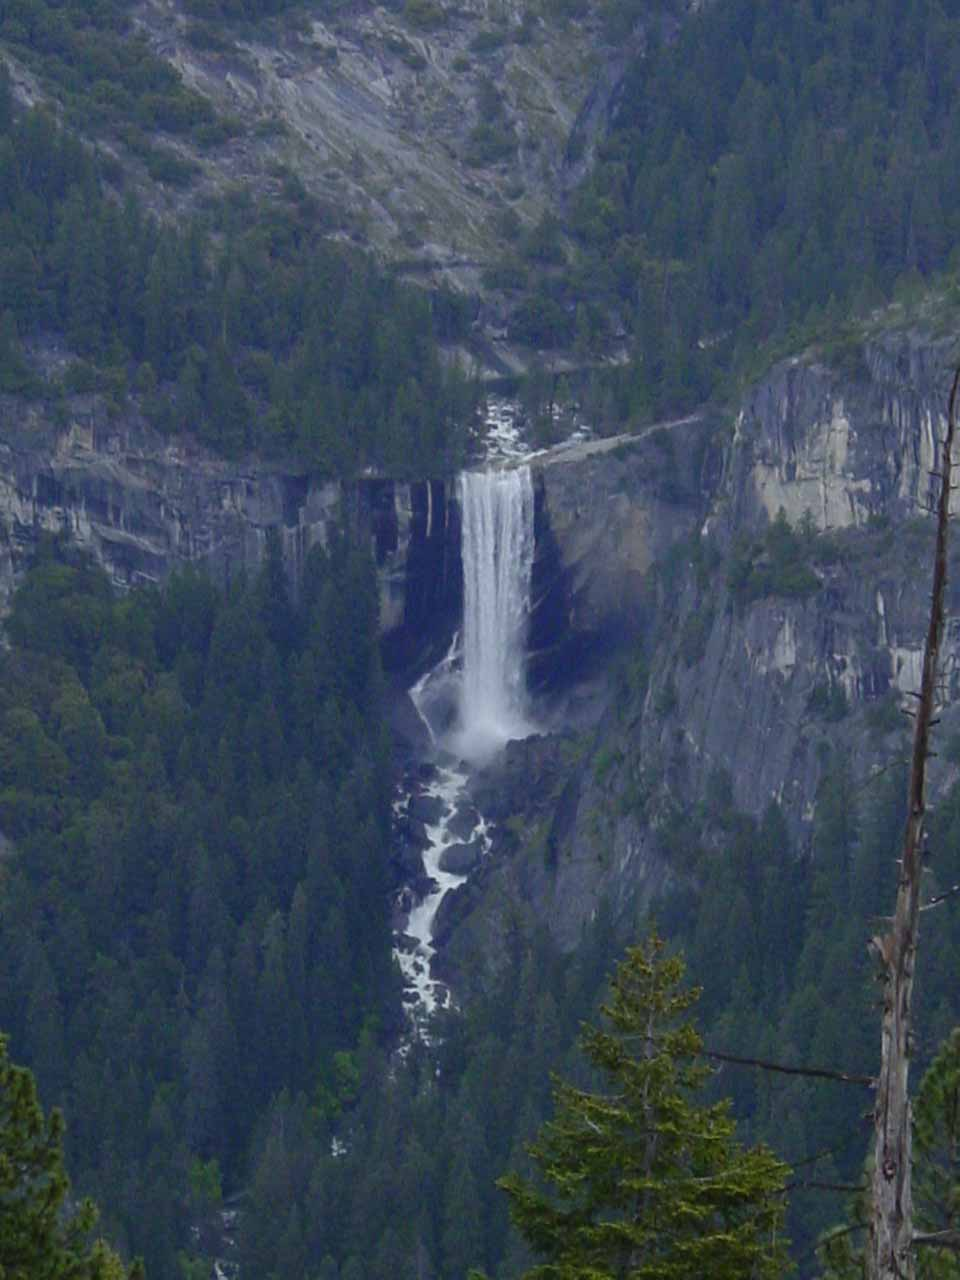 Vernal Fall viewed from the Panorama Trail